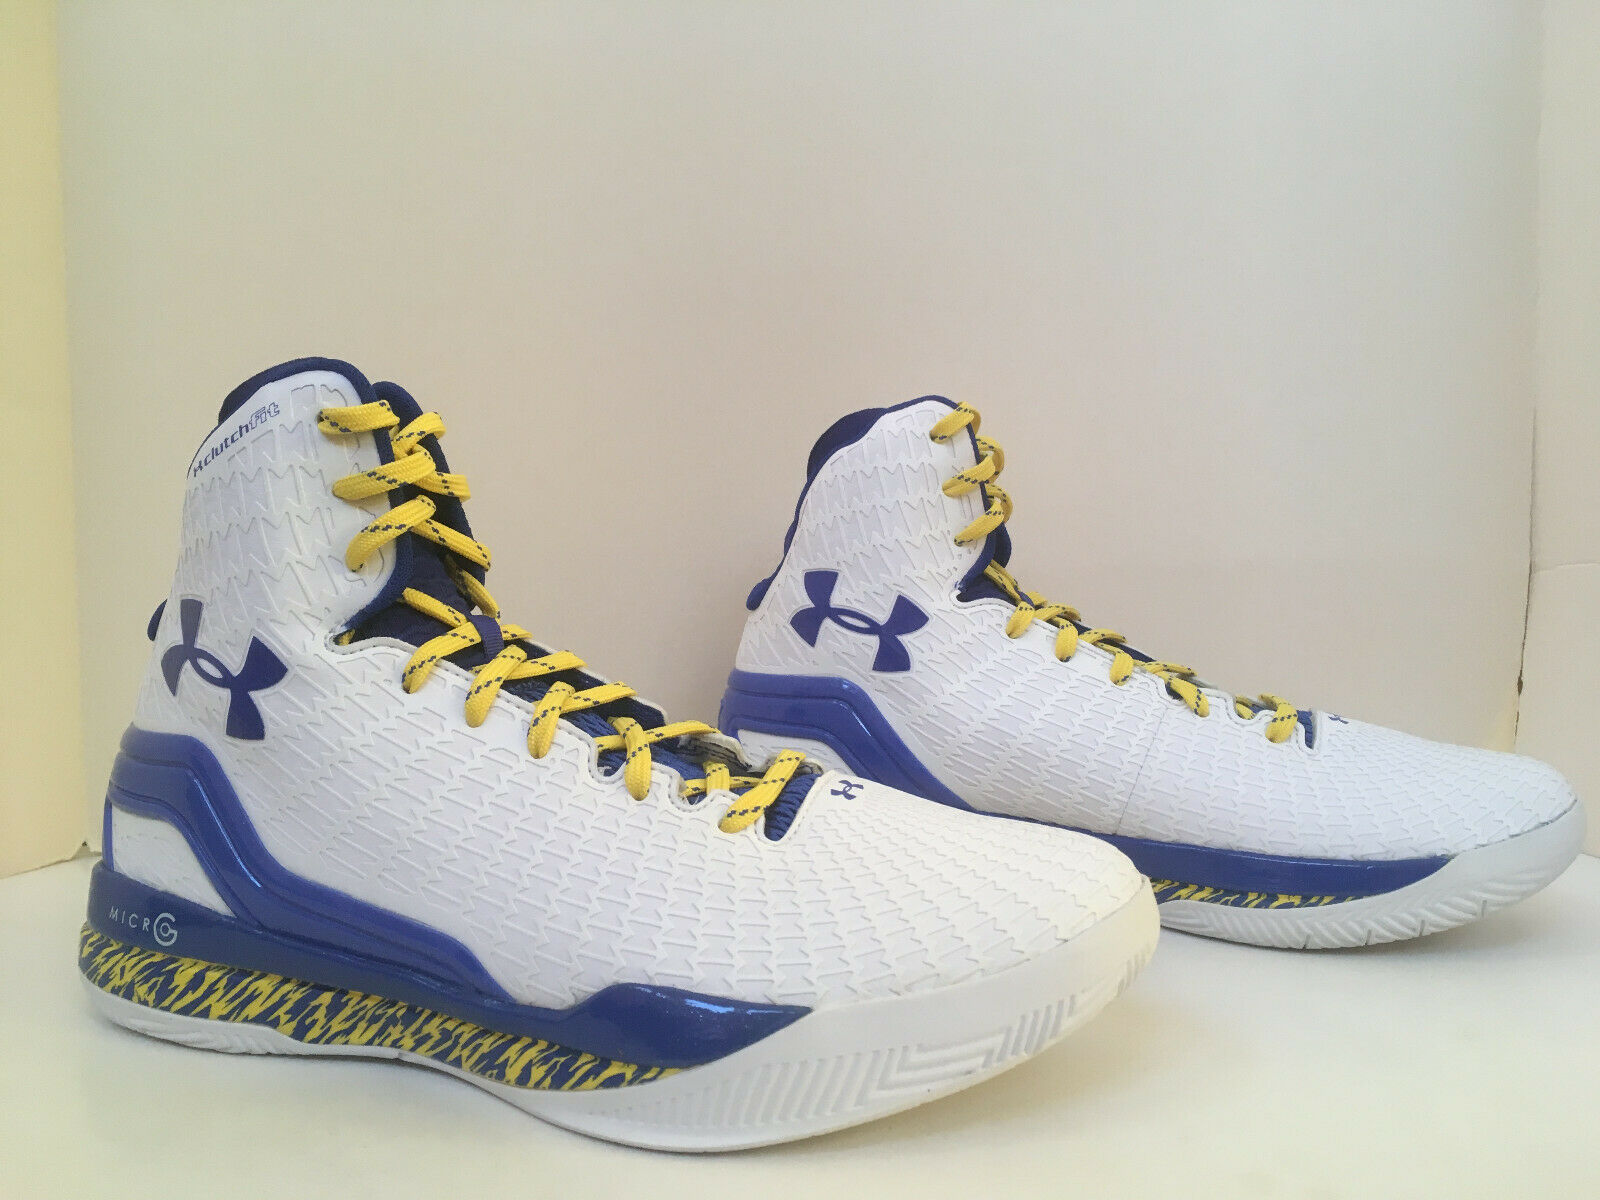 Under Armour Clutchfit Drive Drive Drive 'Curry Home' Dimensione 10.5 deadstock w receipt 425317